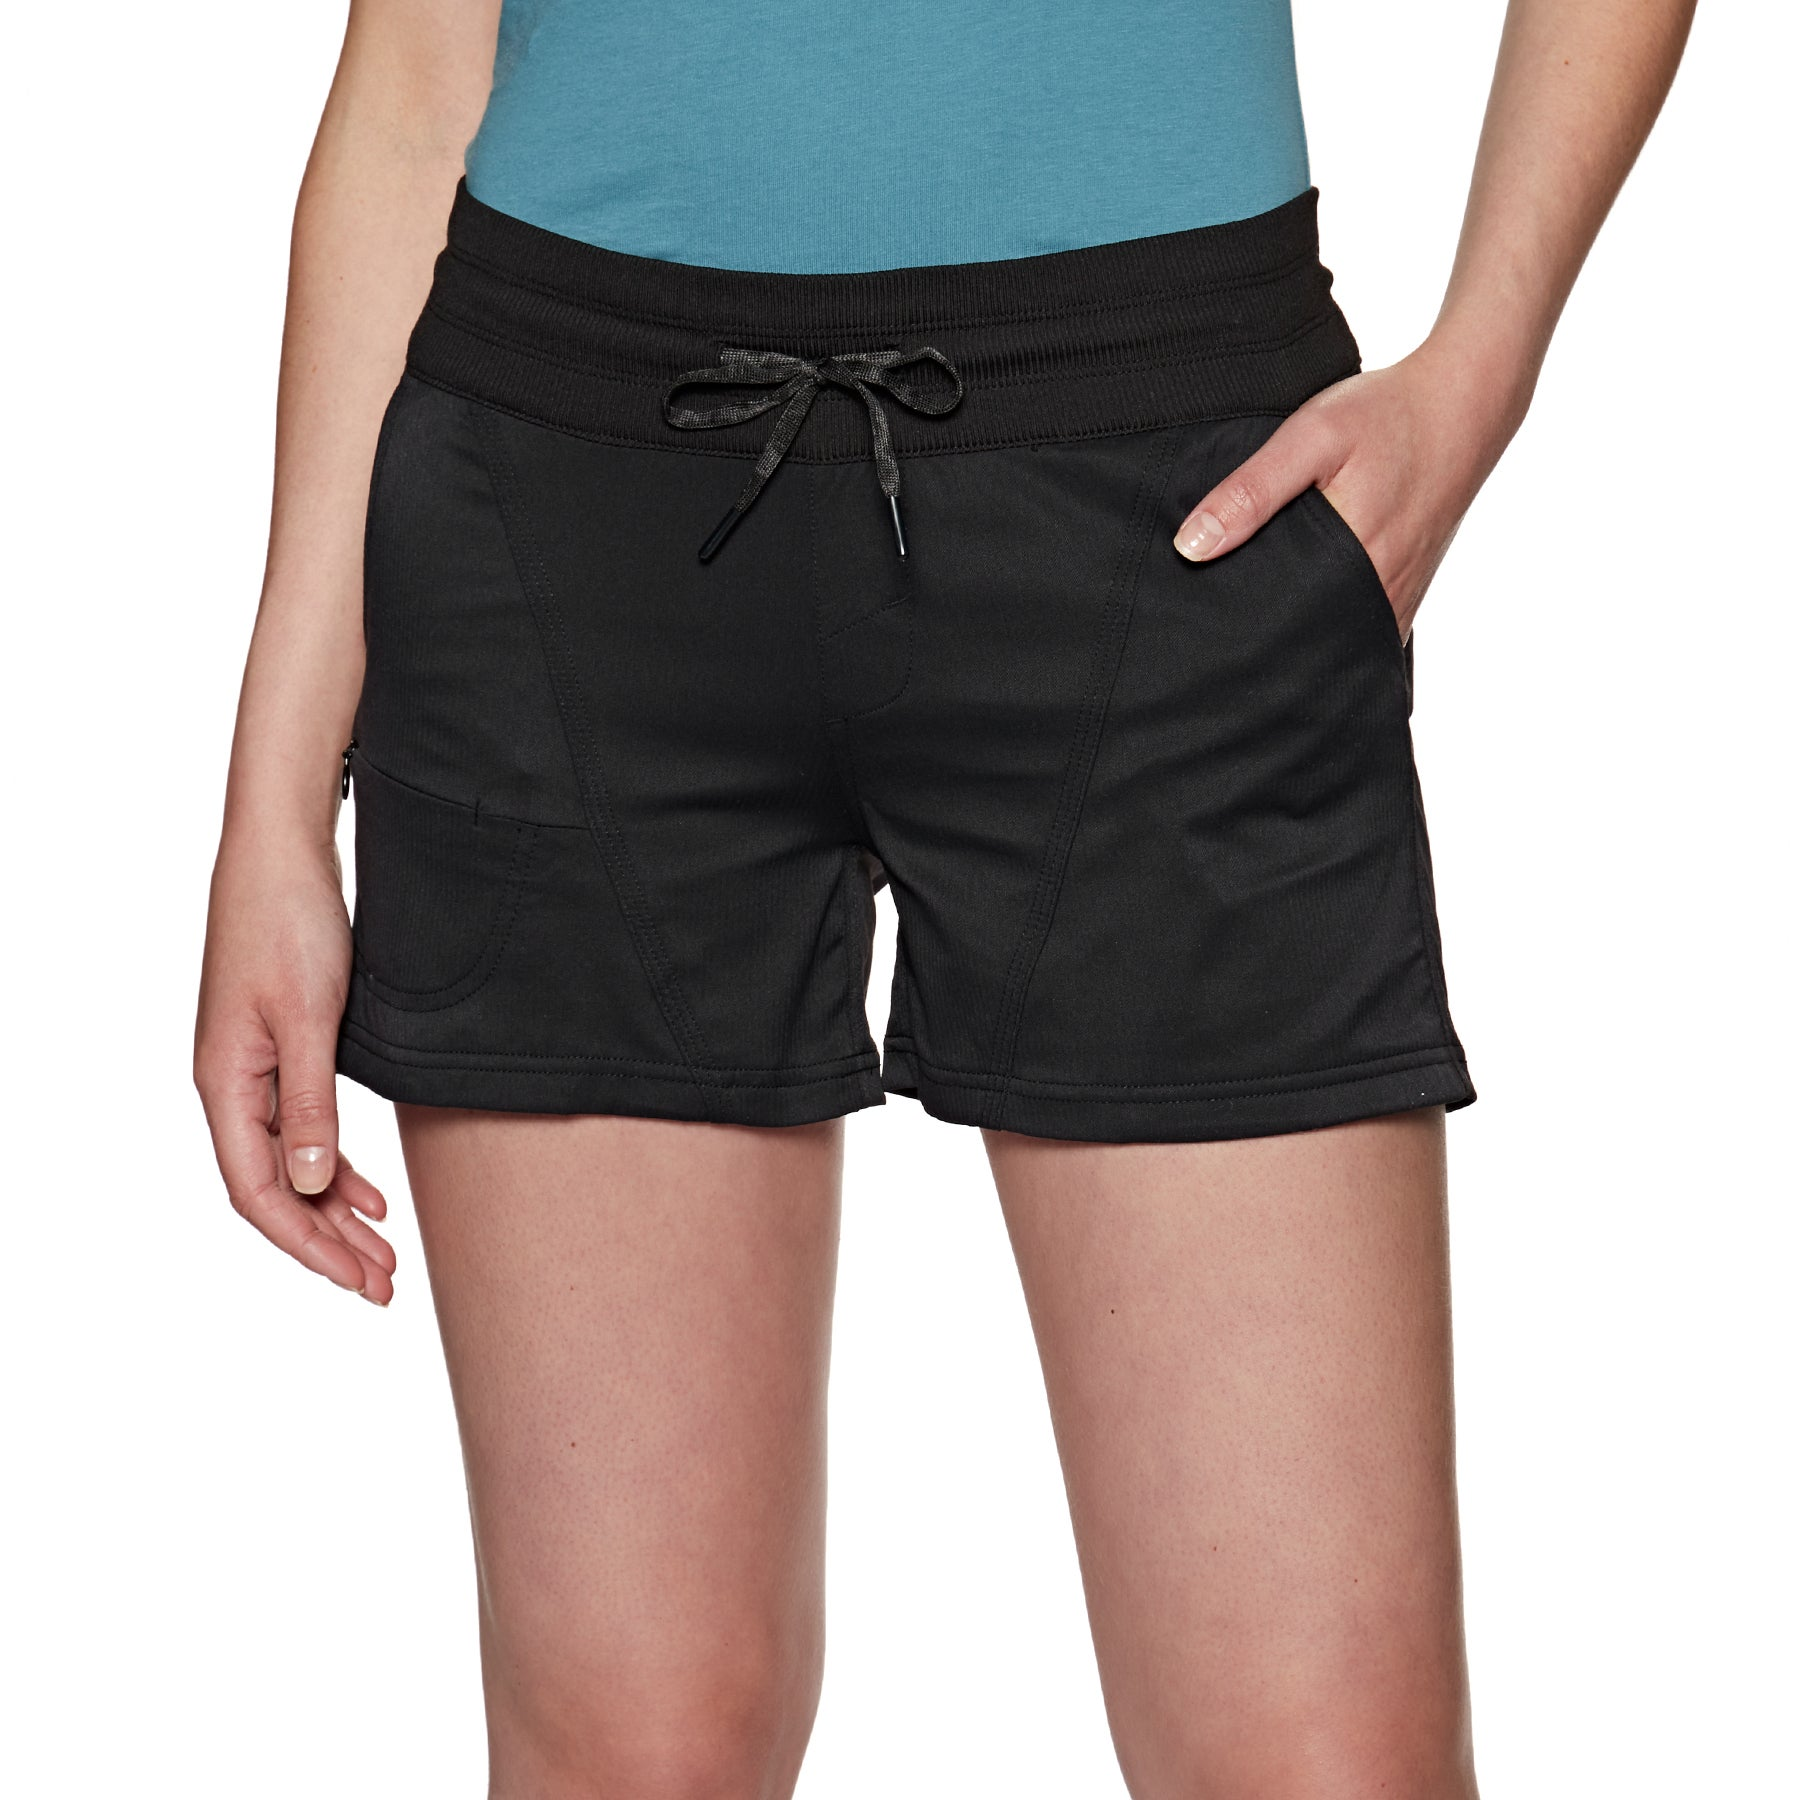 5fb480a63 Details about The North Face Aphrodite 2.0 Womens Shorts - Tnf Black All  Sizes